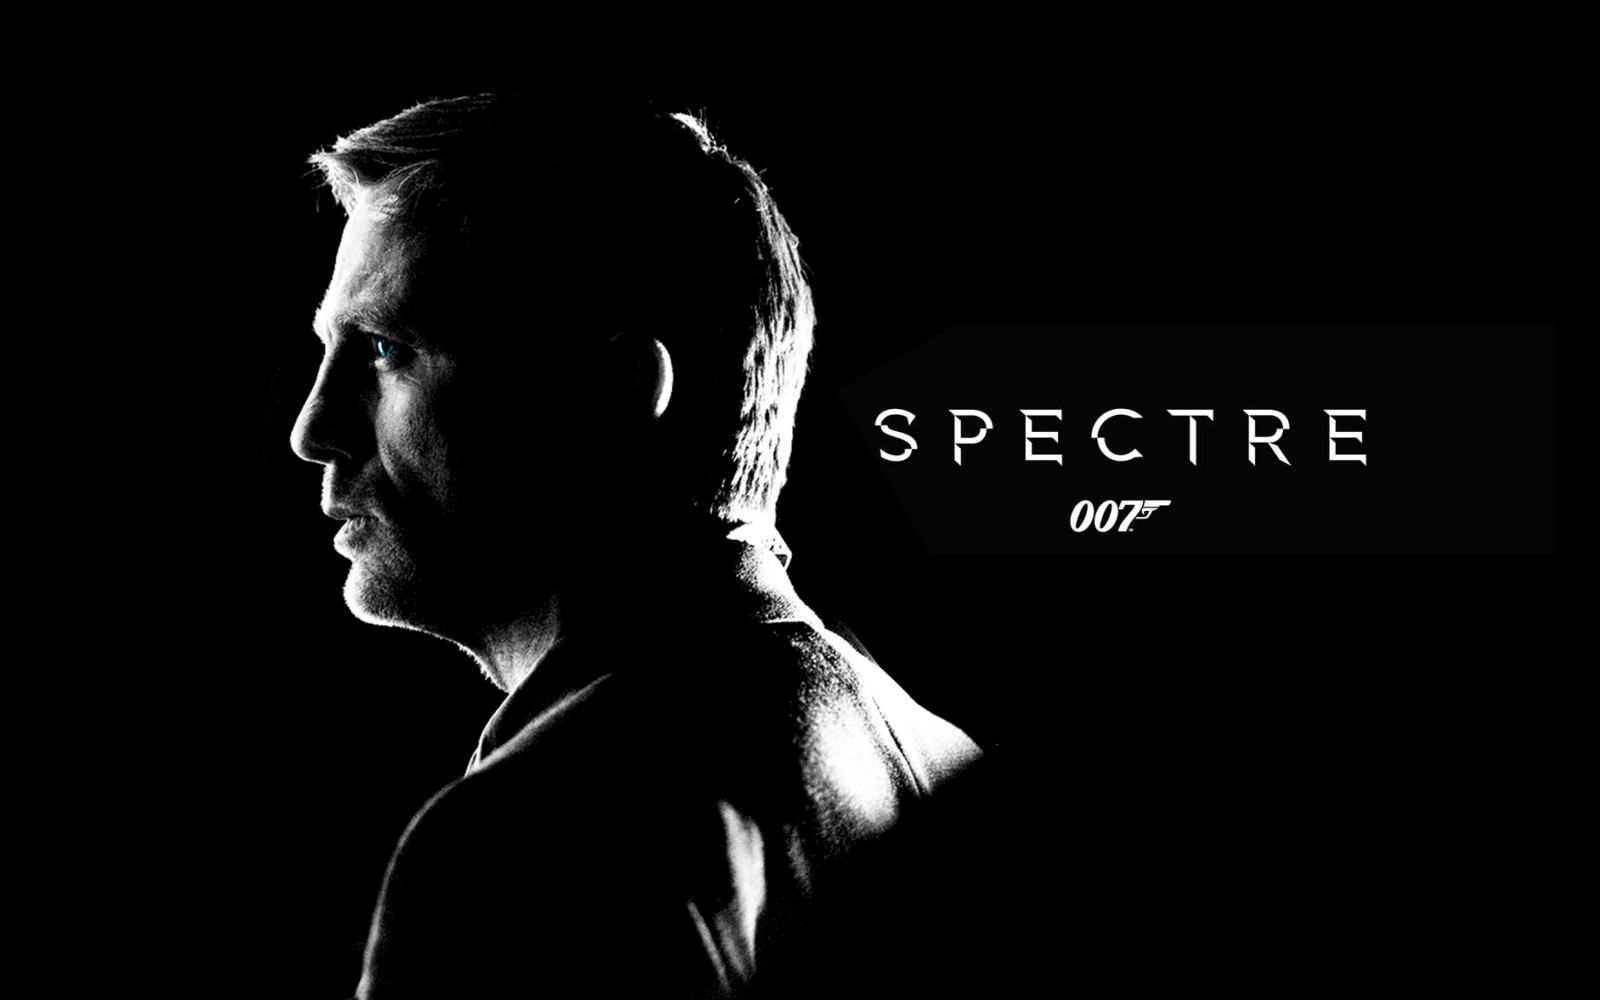 spectre_2015_movie_james_bond_man_007_hd-wallpaper-1924906